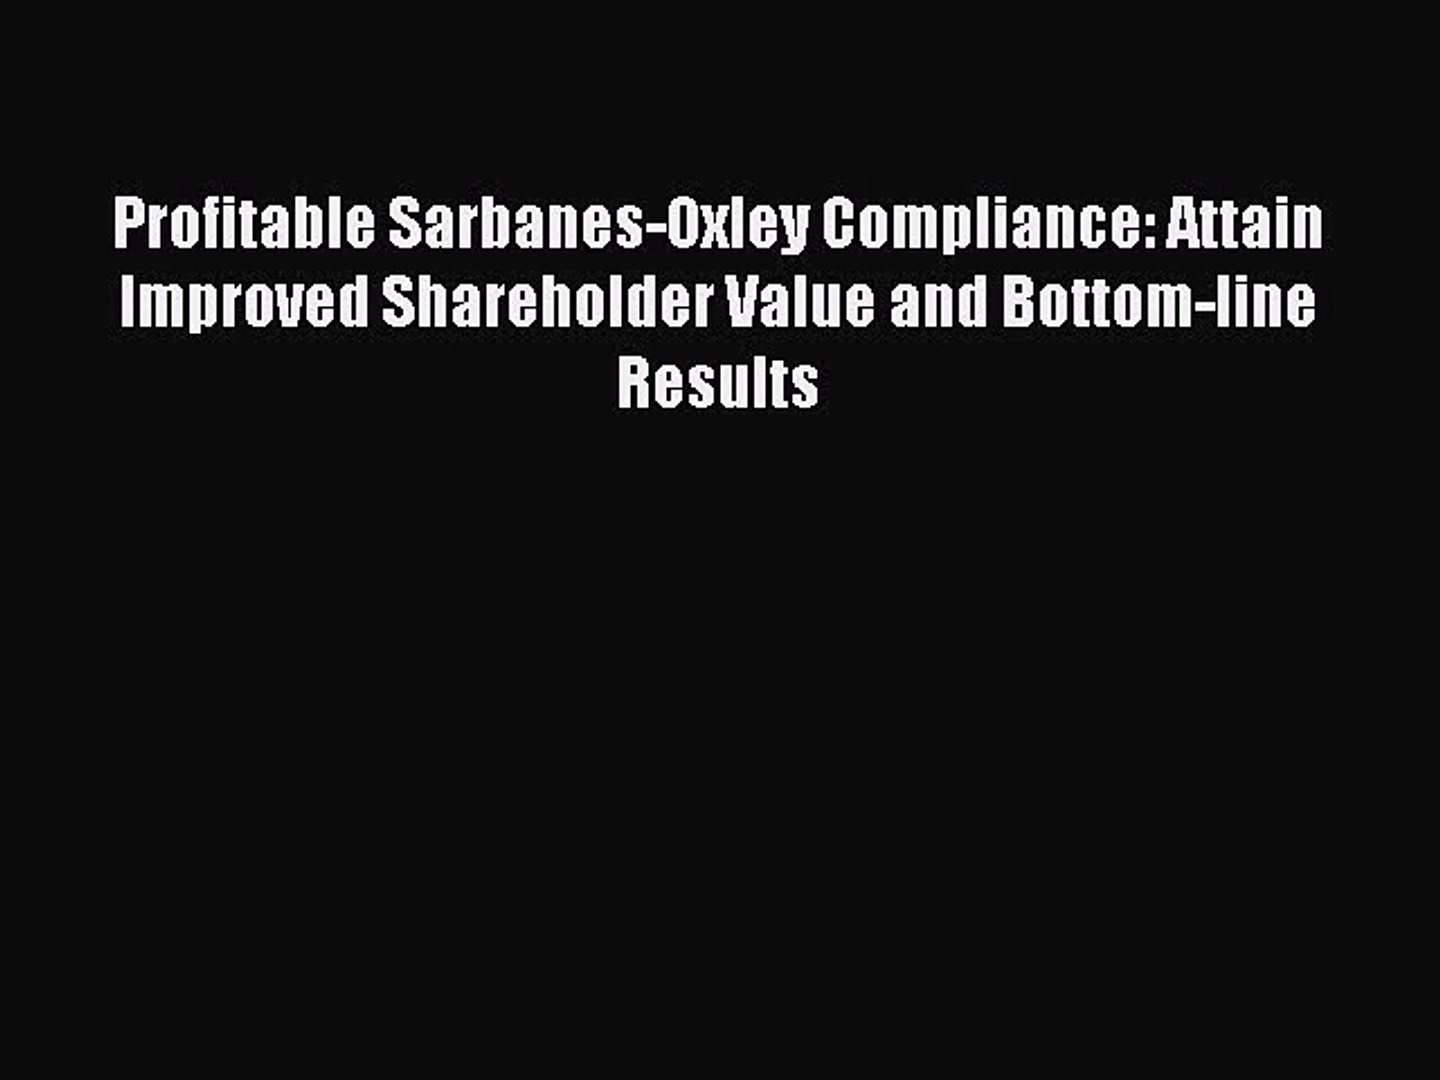 For you Profitable Sarbanes-Oxley Compliance: Attain Improved Shareholder Value and Bottom-line